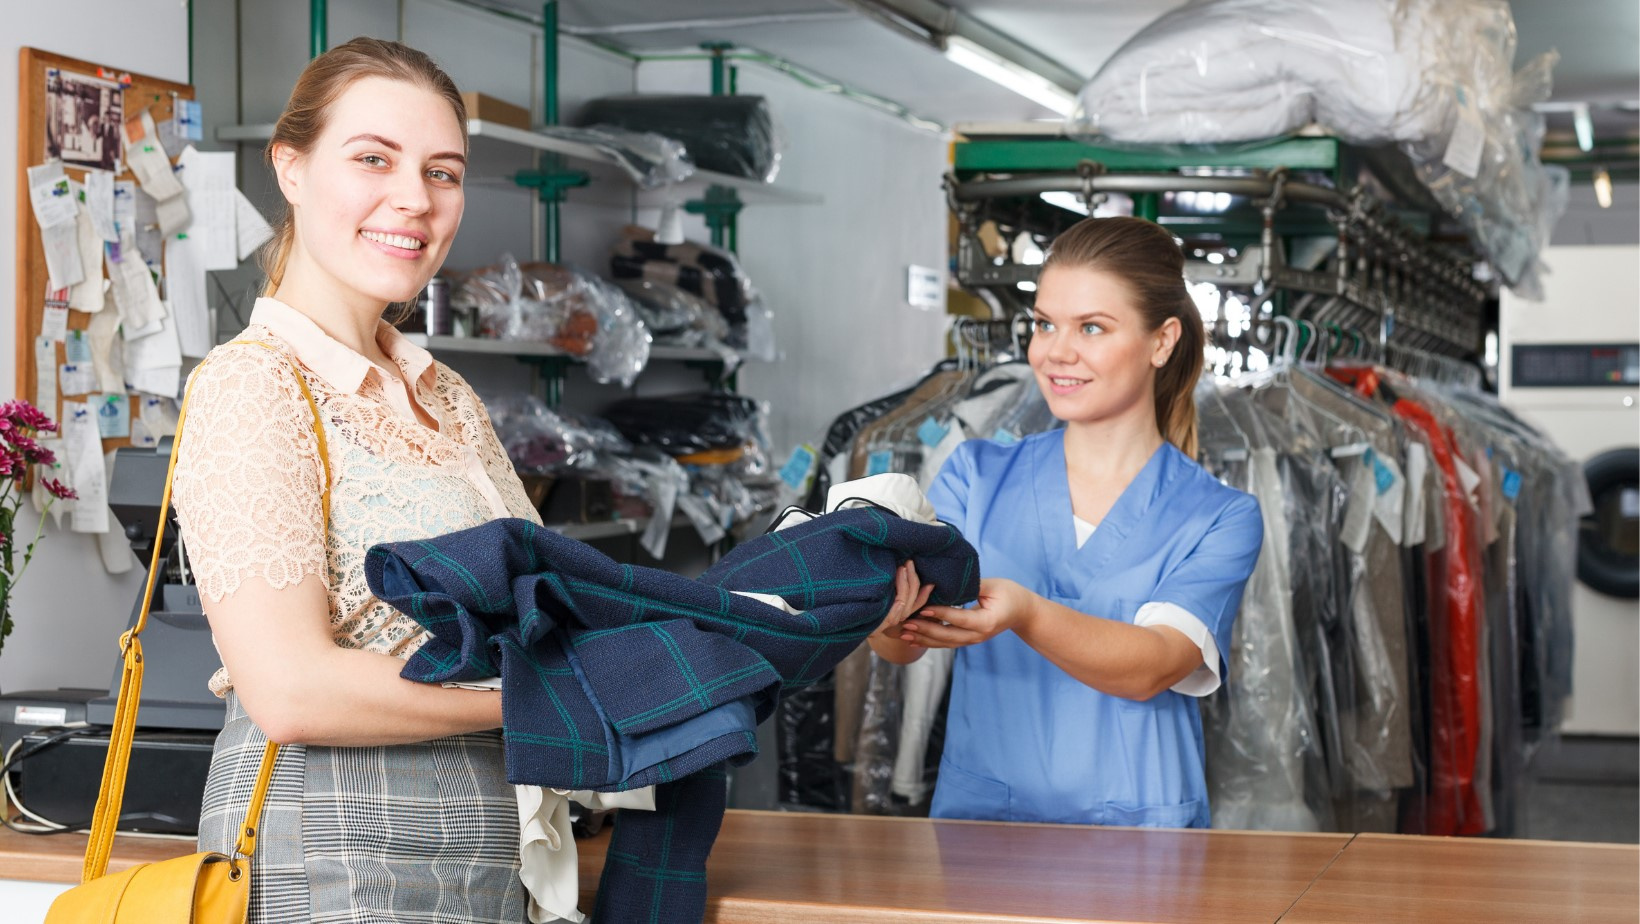 Well Established Dry Cleaning Business for Sale - 390717-AS